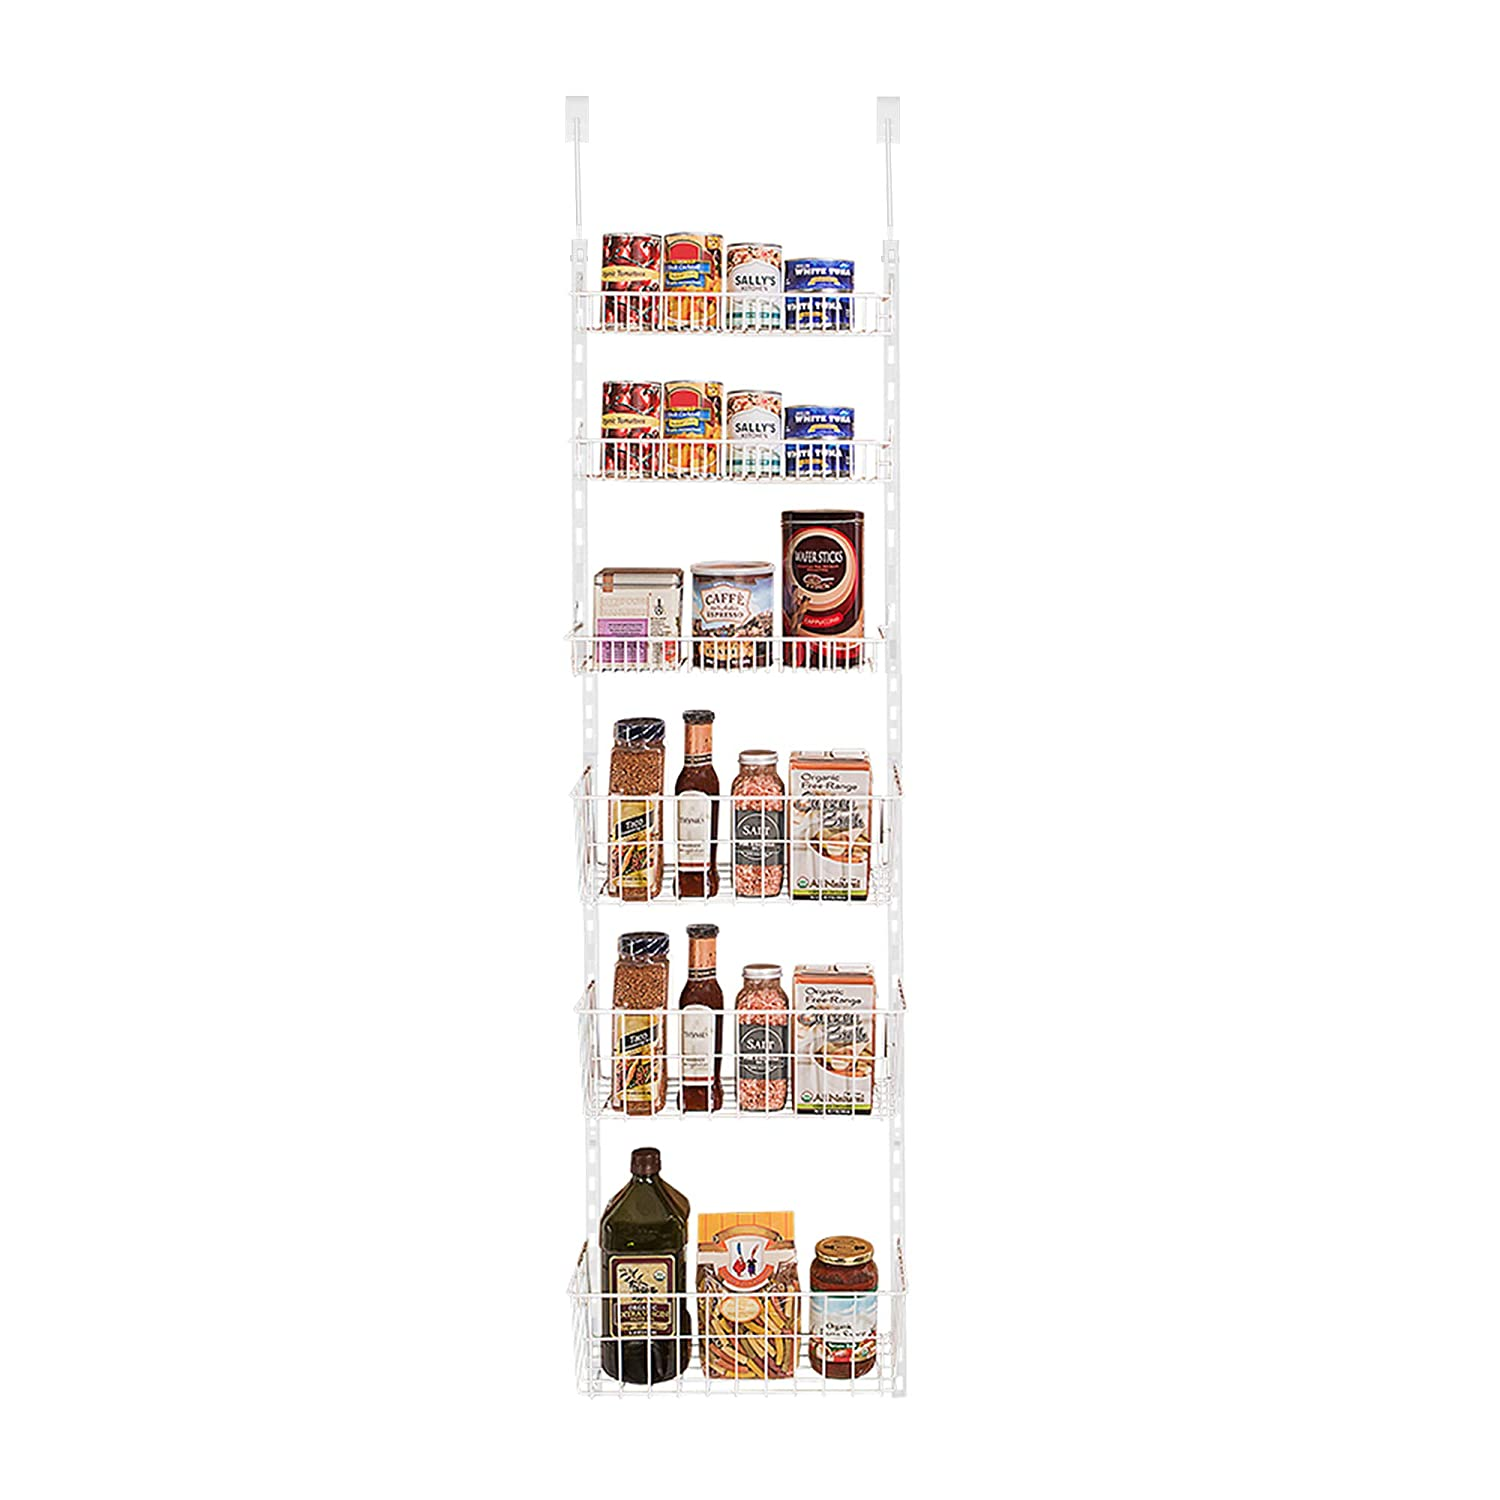 Smart Design Over The Door Adjustable Pantry Organizer Rack w/ 6 Adjustable Shelves - PE Dip - Steel Metal Construction w/Hooks & Screws - Cans, Food, Misc. Item - Kitchen (17 x 55.25 Inch) [White]